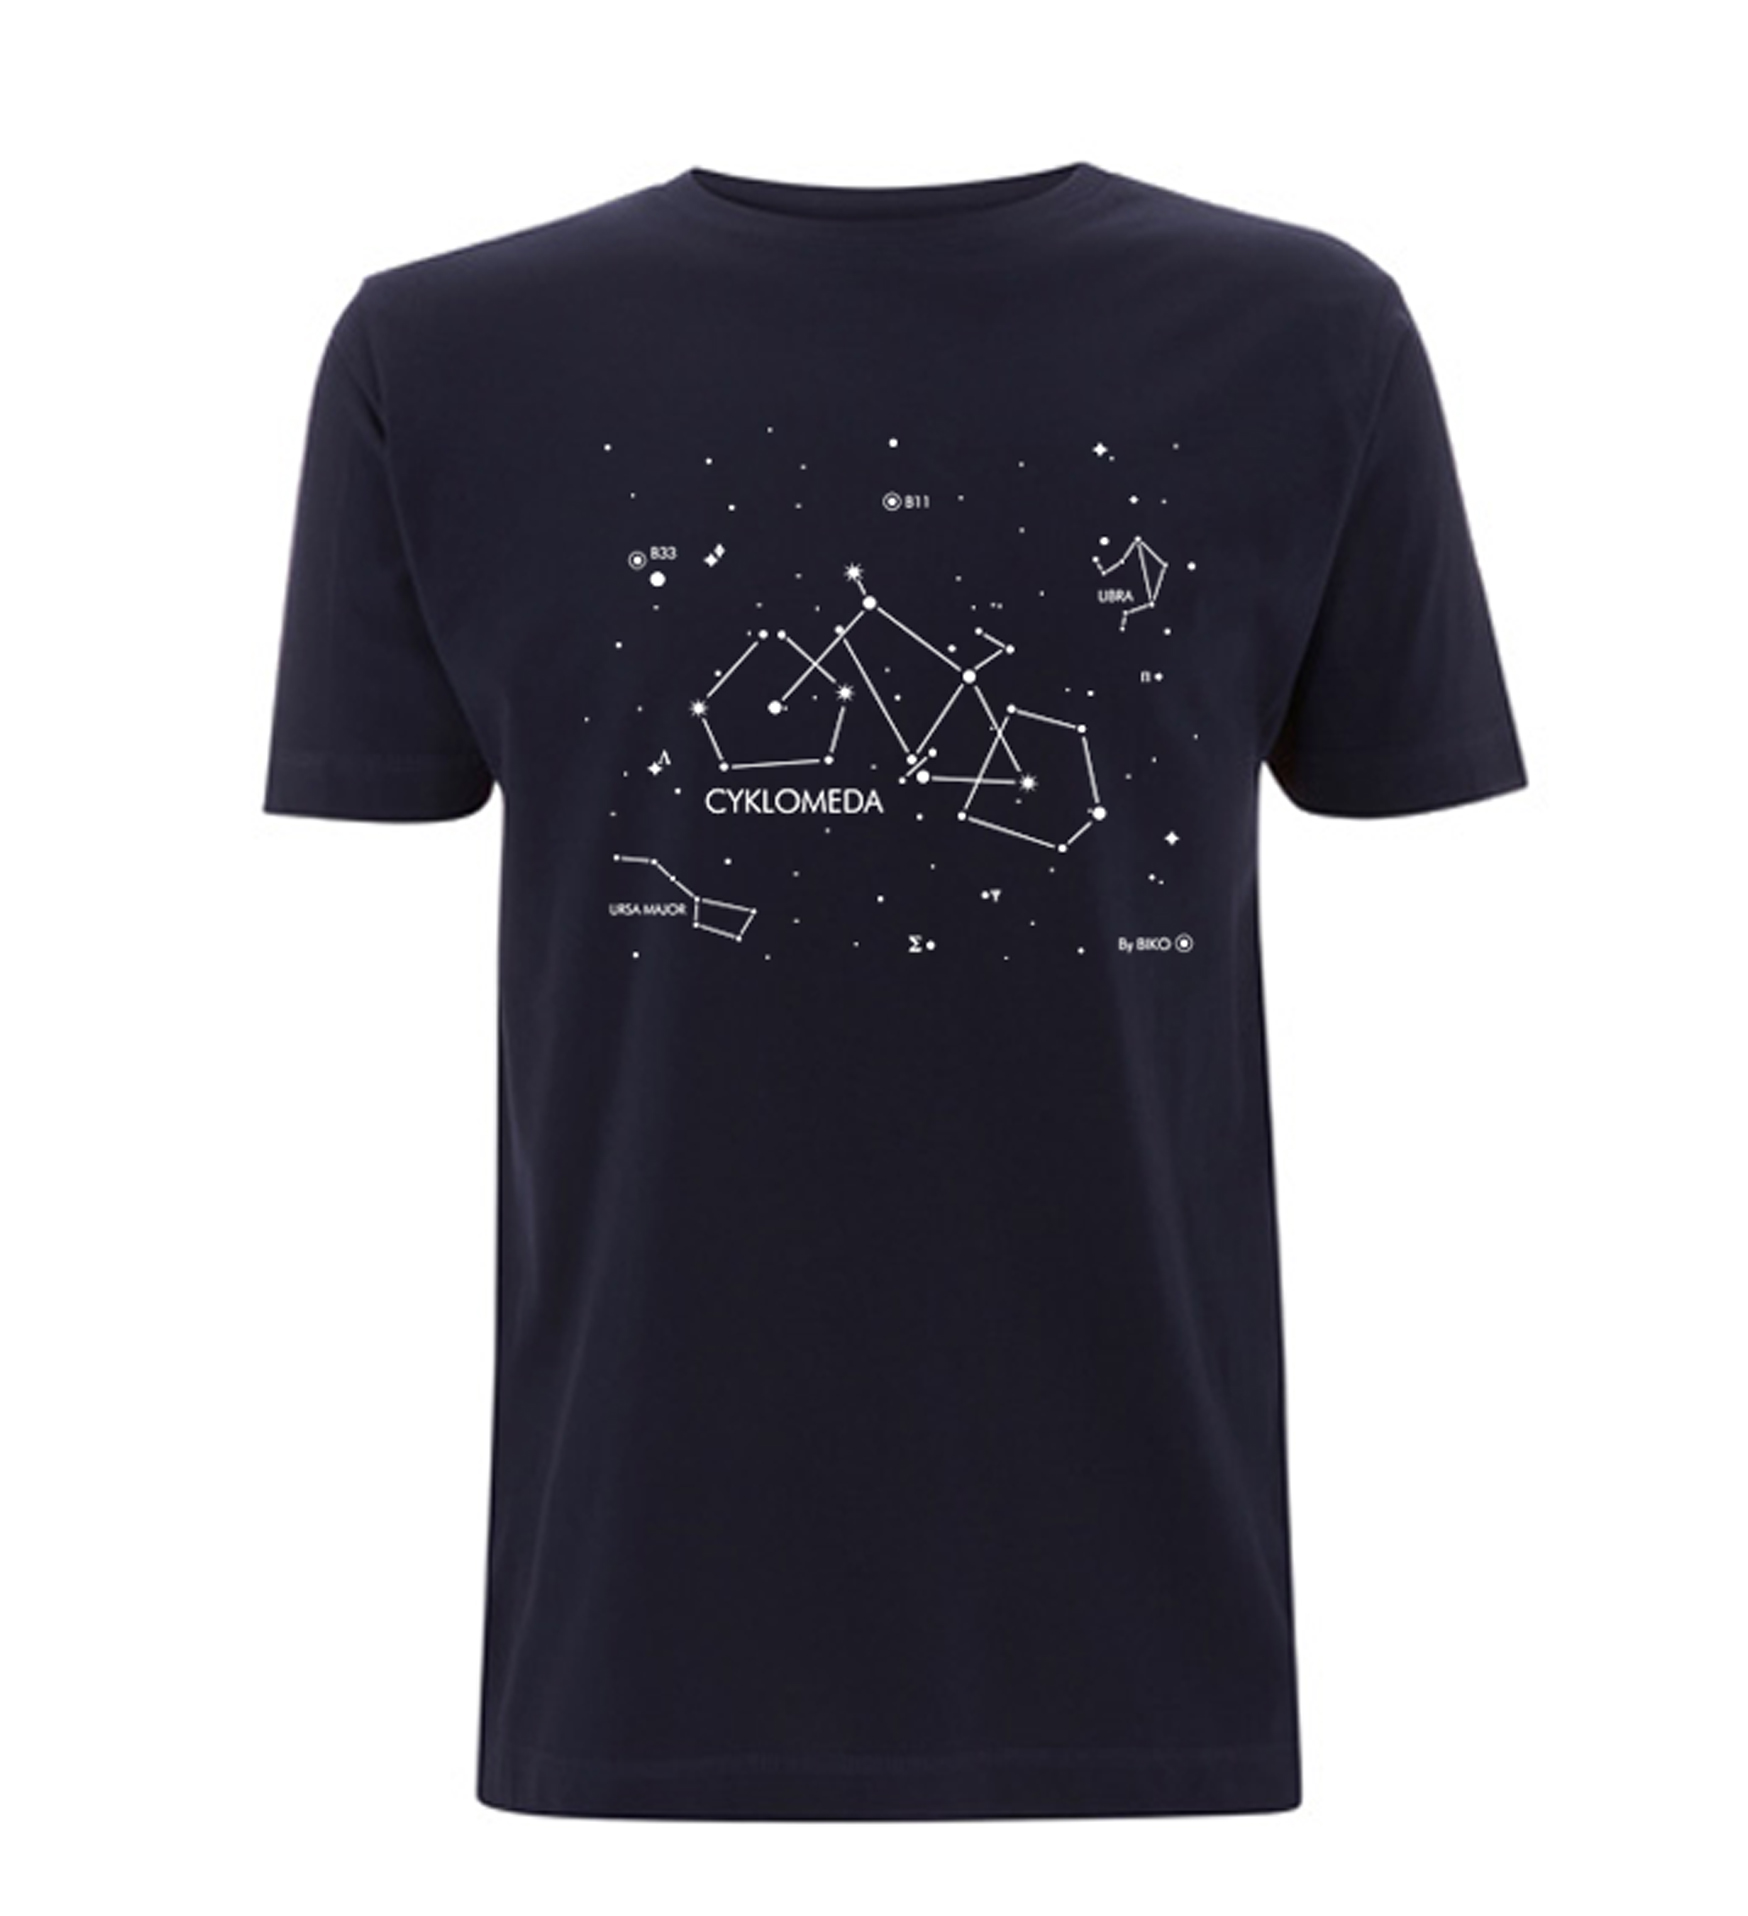 t-shirts for bike lovers